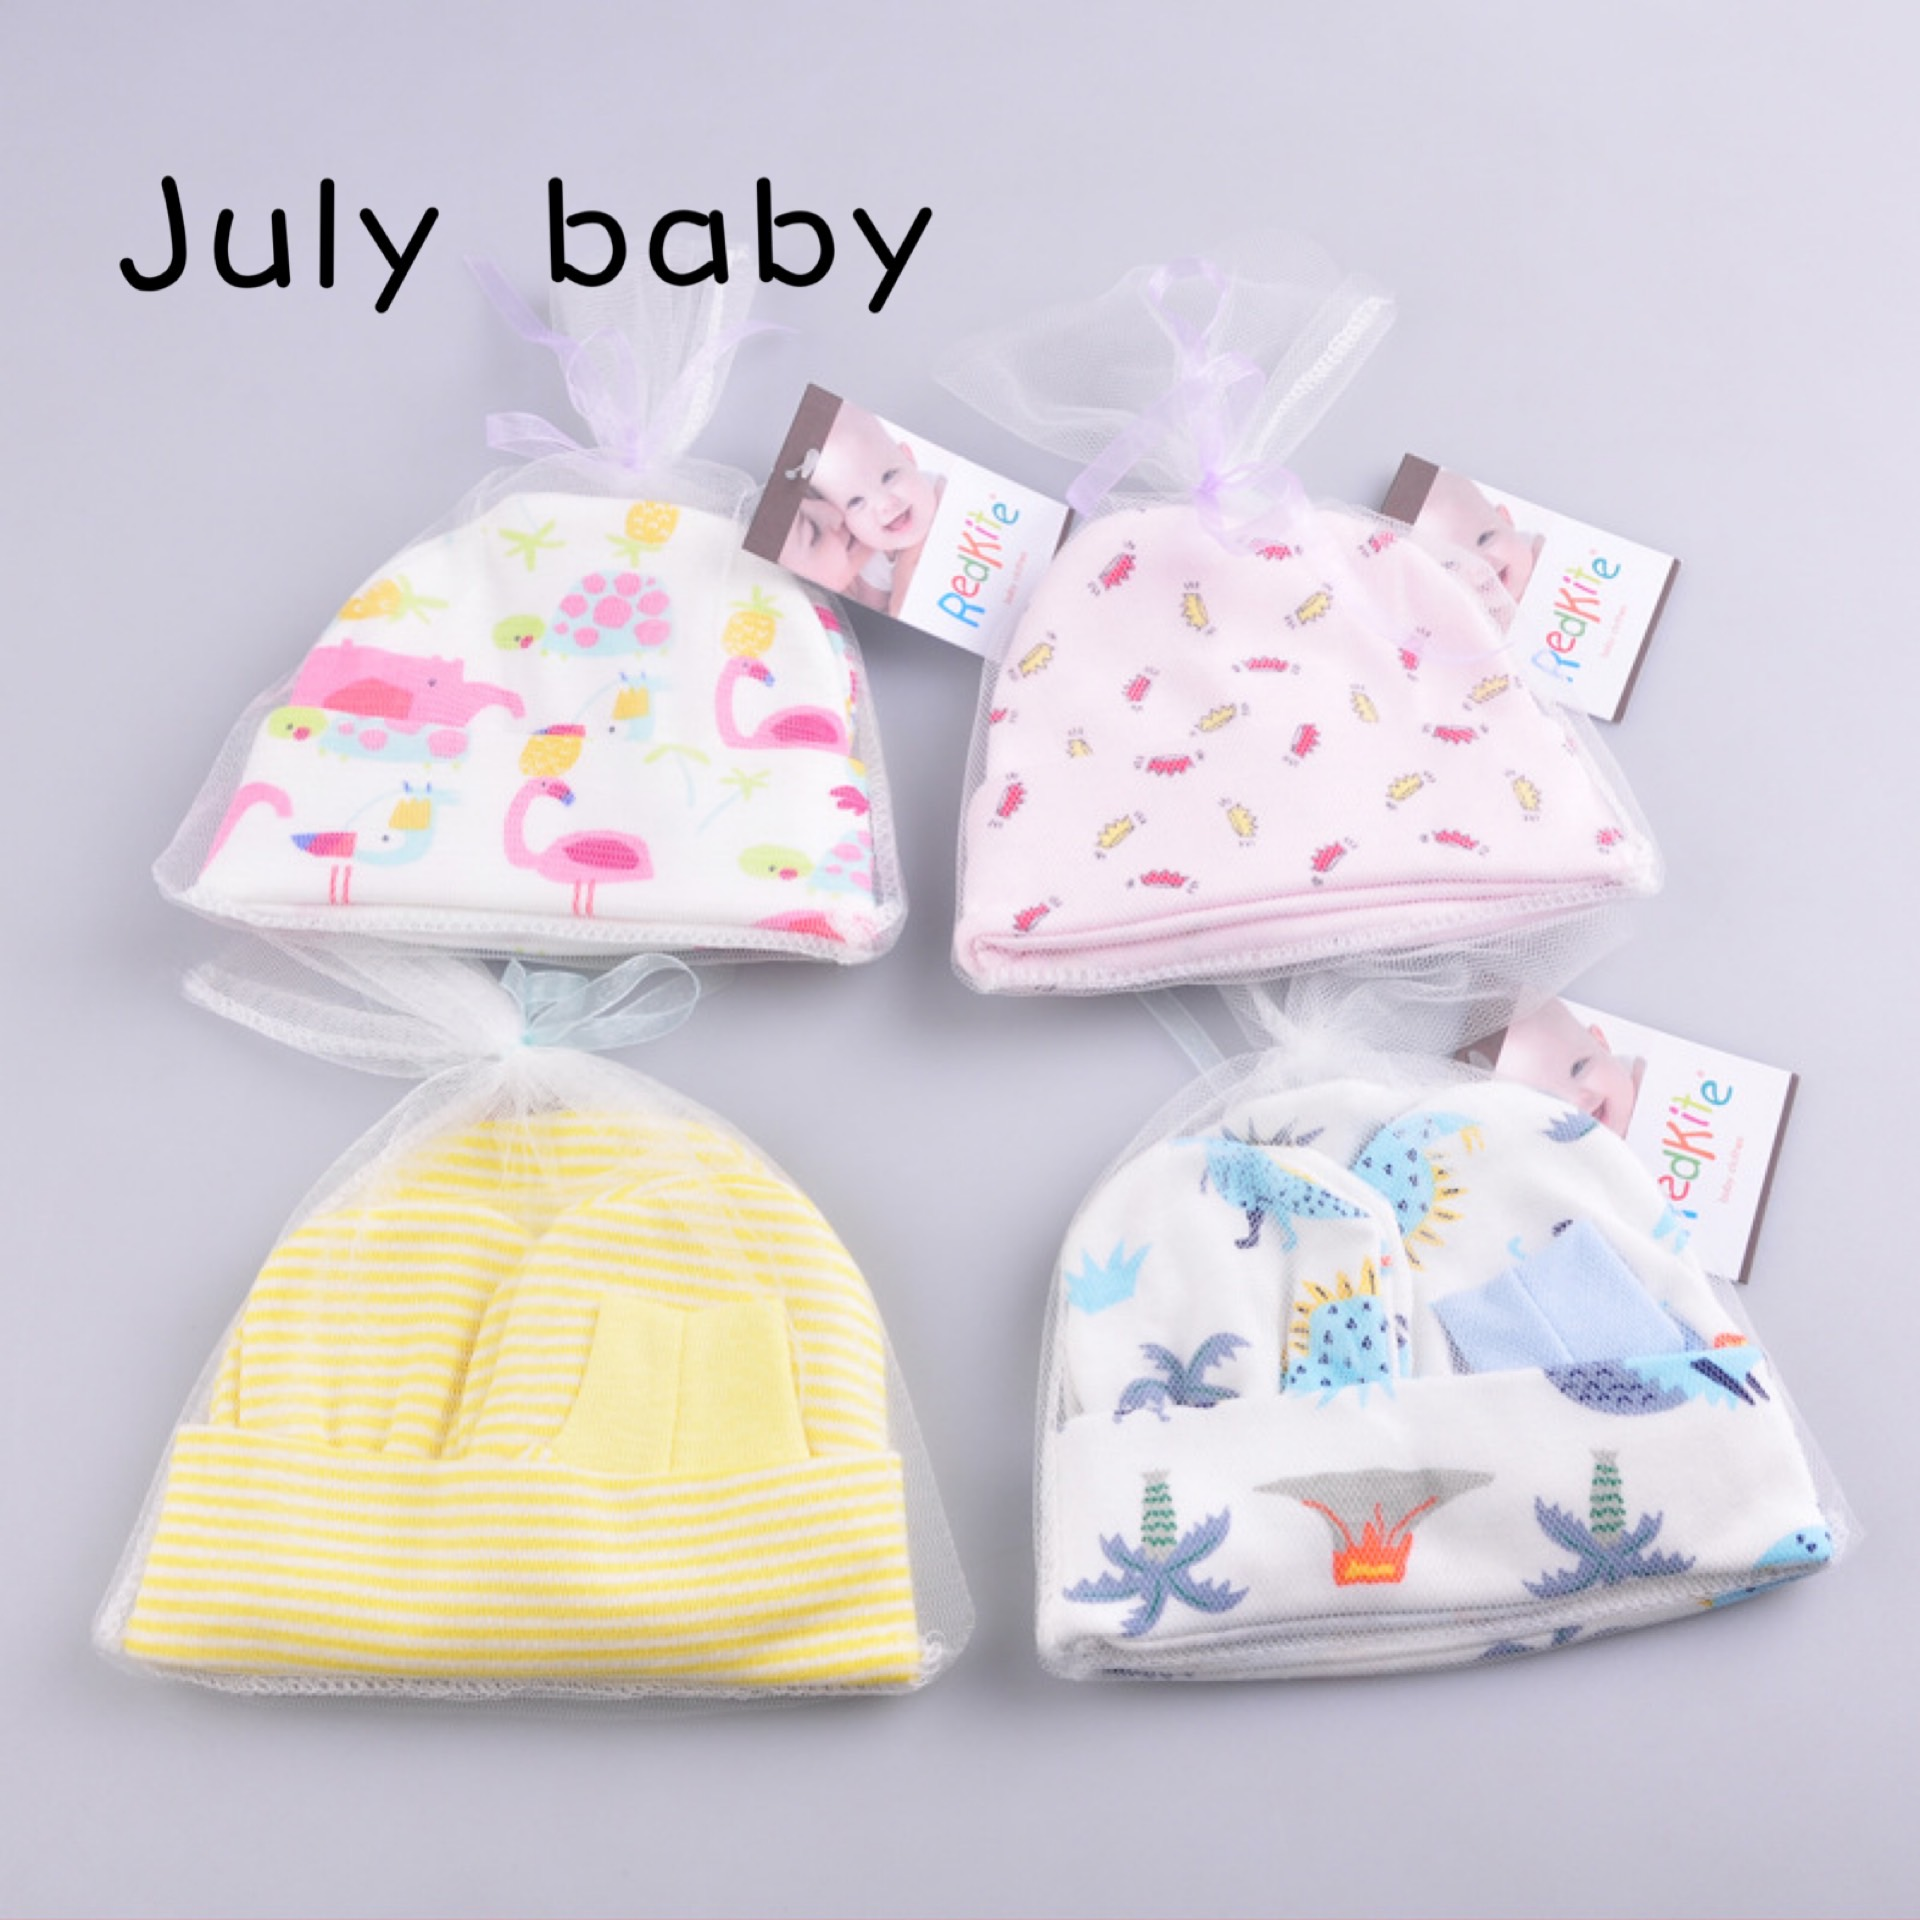 July Baby Newborn Baby Knitted Cotton Baby Hat Feet Socks Gloves Gift Box Gift Comfortable Cotton 3 Piece Set